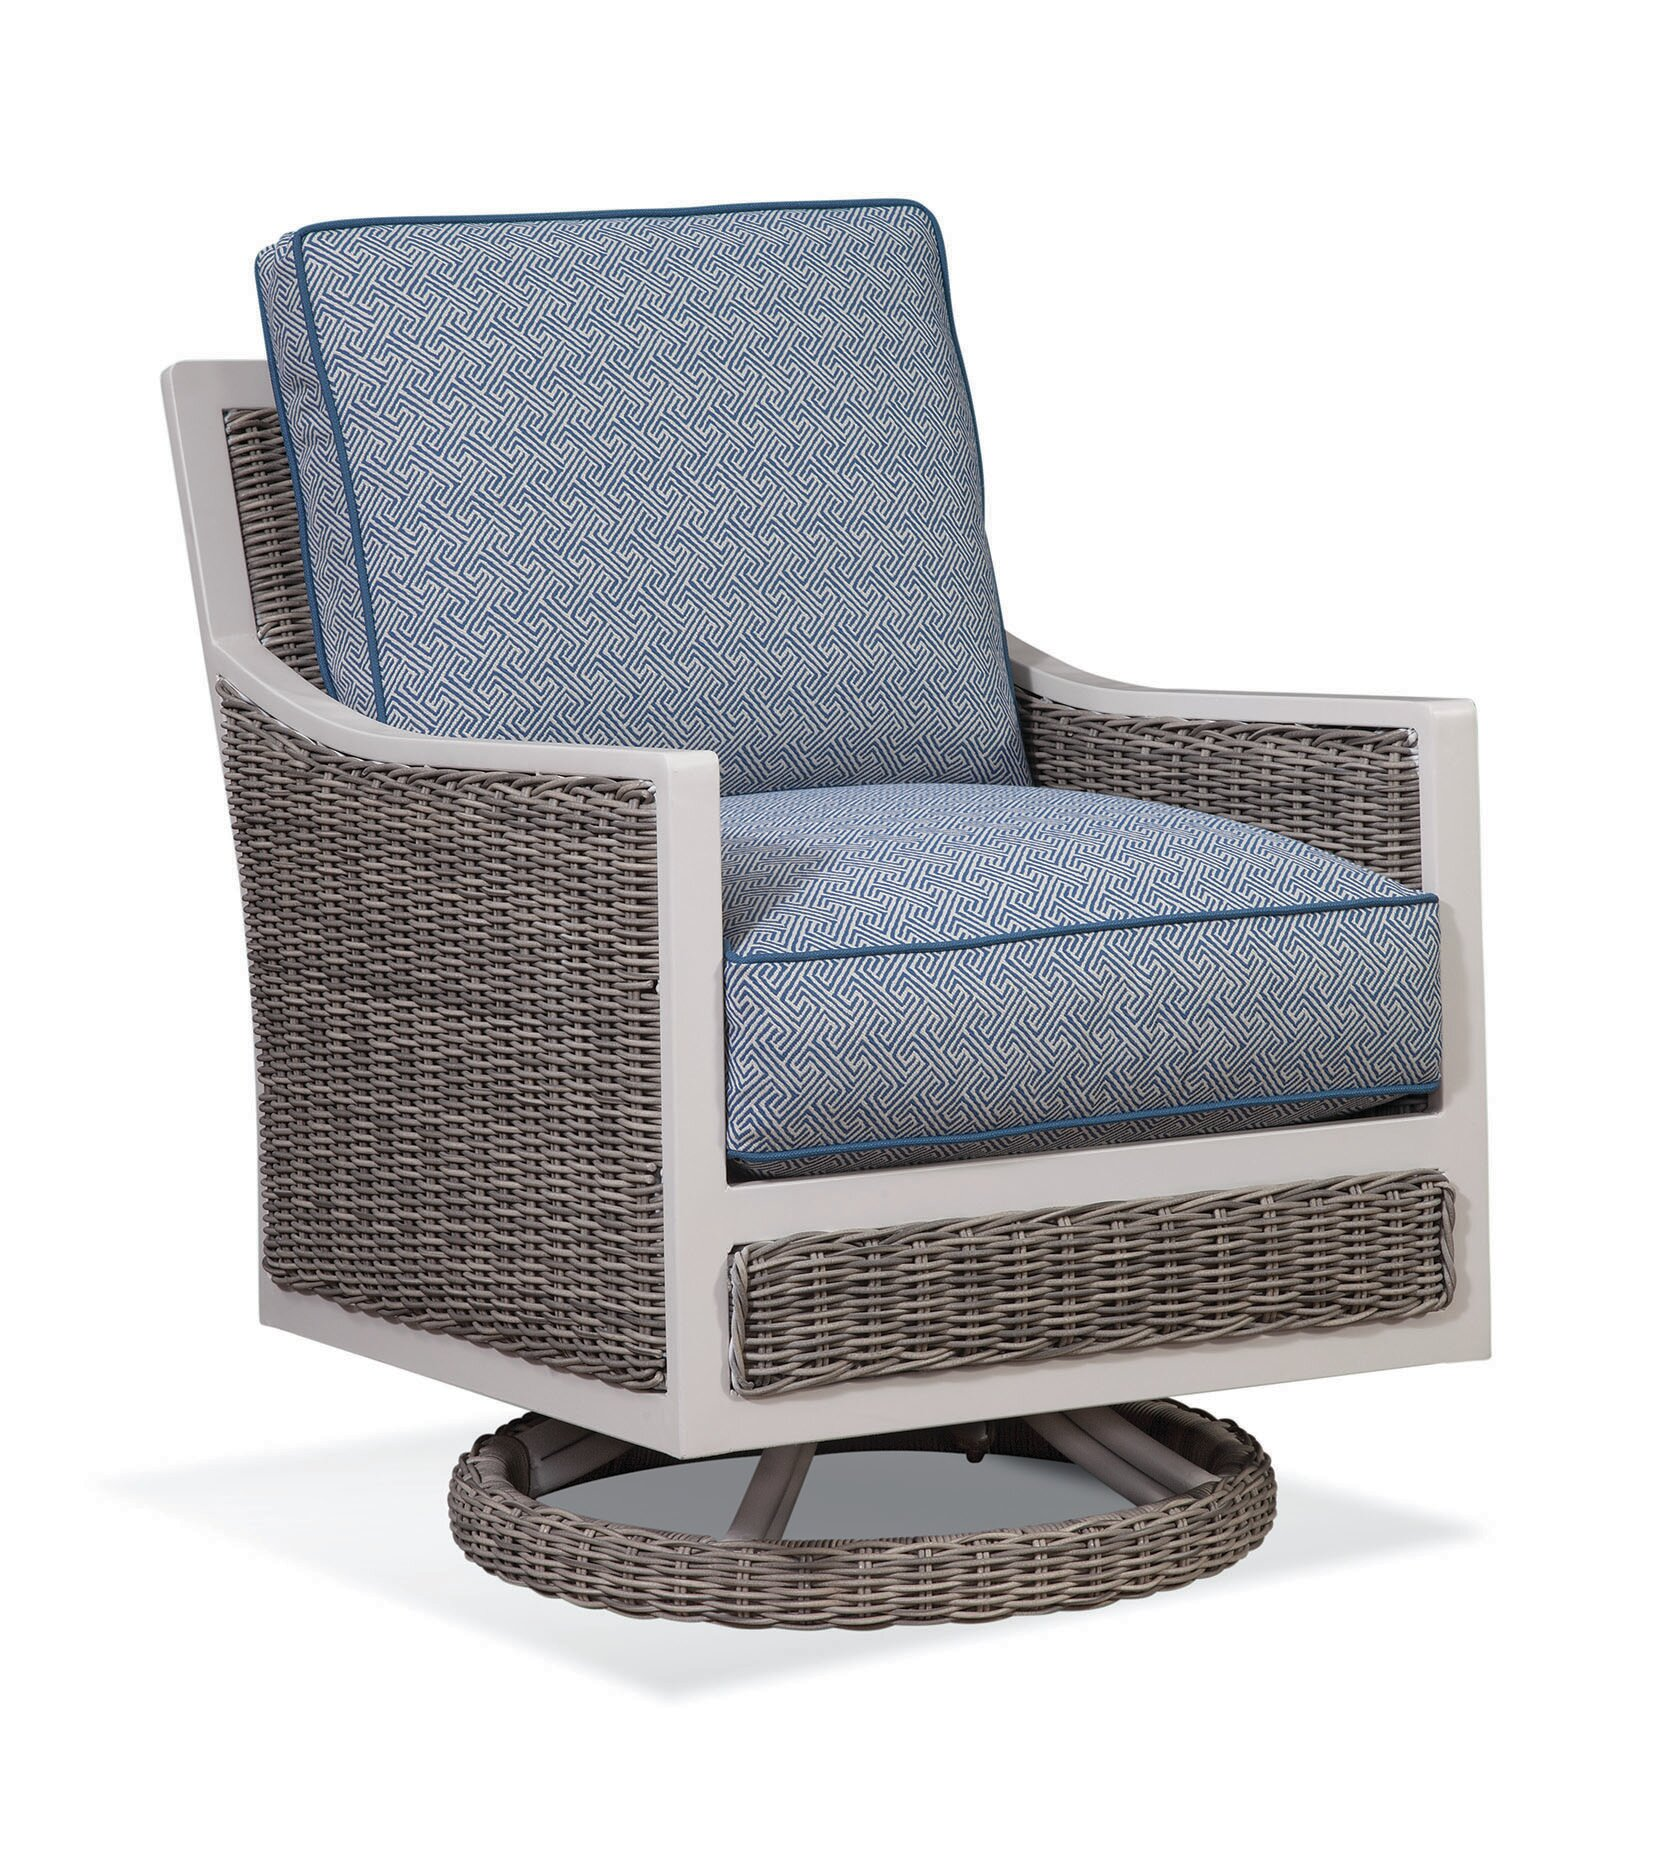 Surprising Molly Patio Swivel Patio Chair With Cushions Cjindustries Chair Design For Home Cjindustriesco